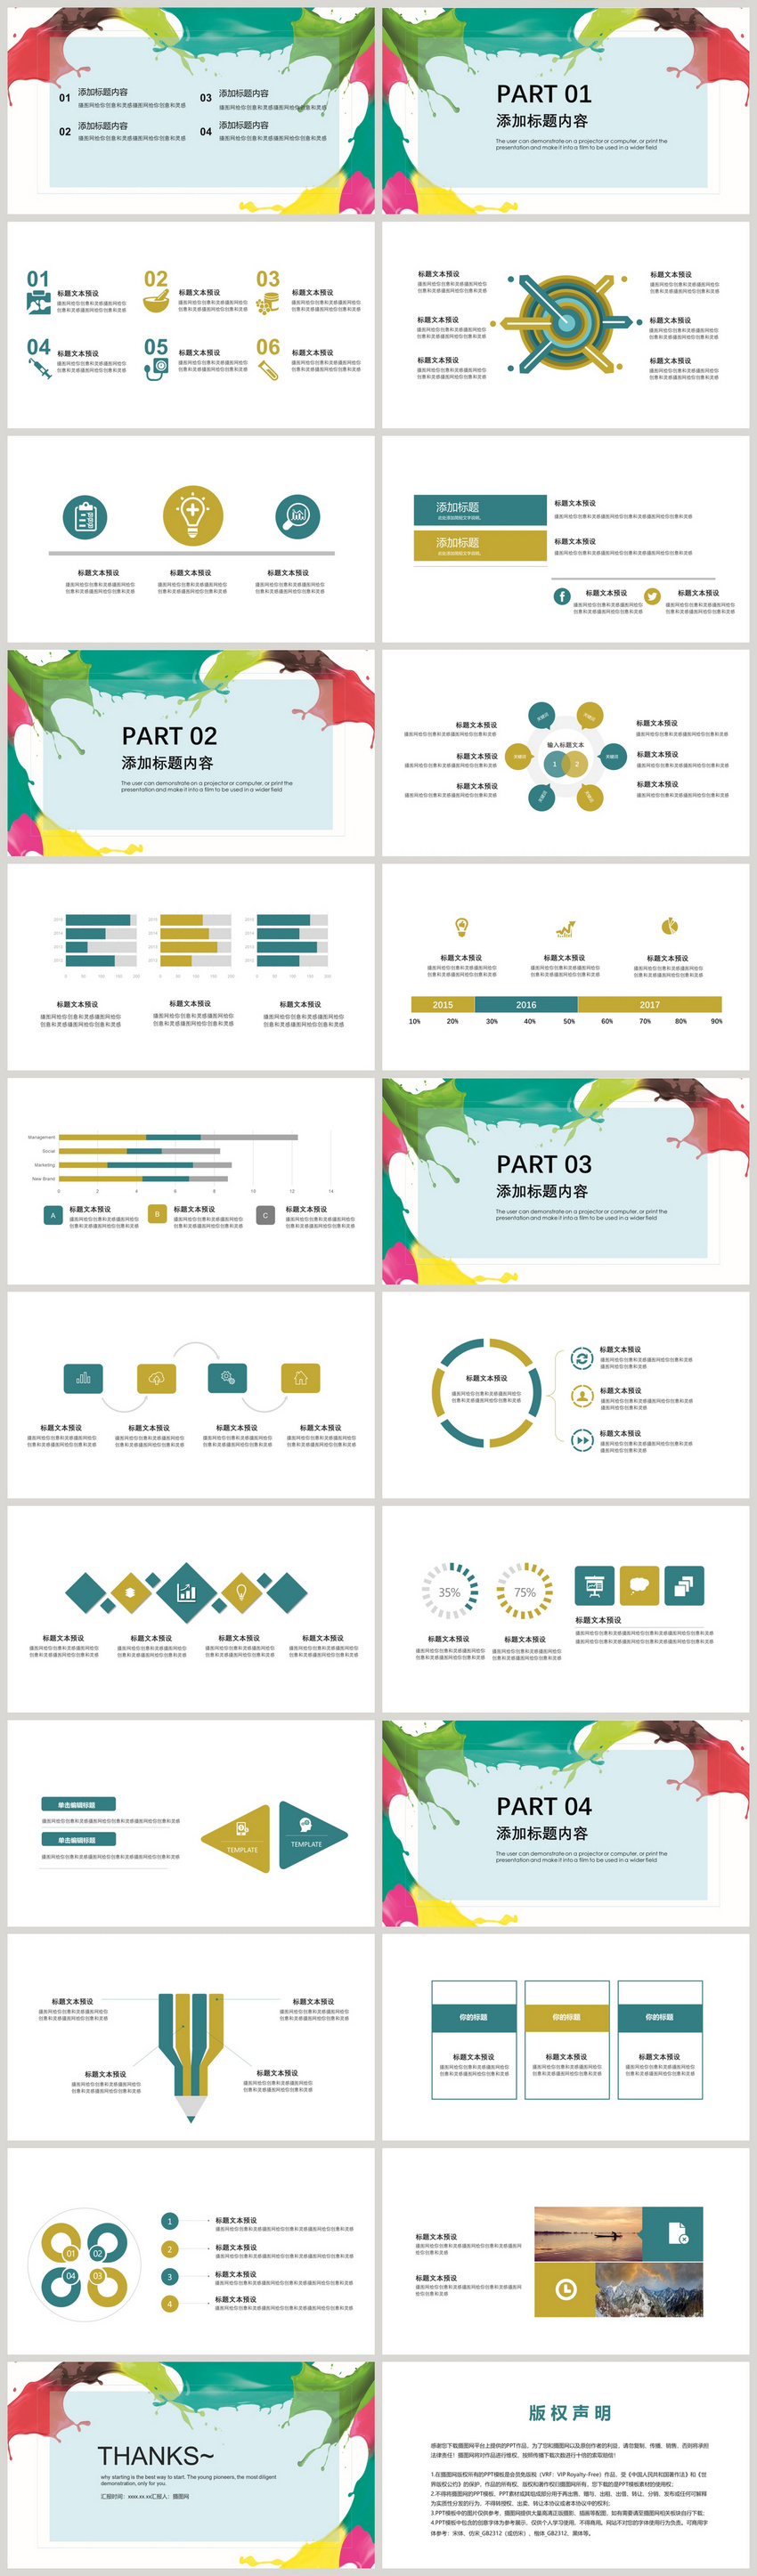 color team building ppt template powerpoint templete ppt free